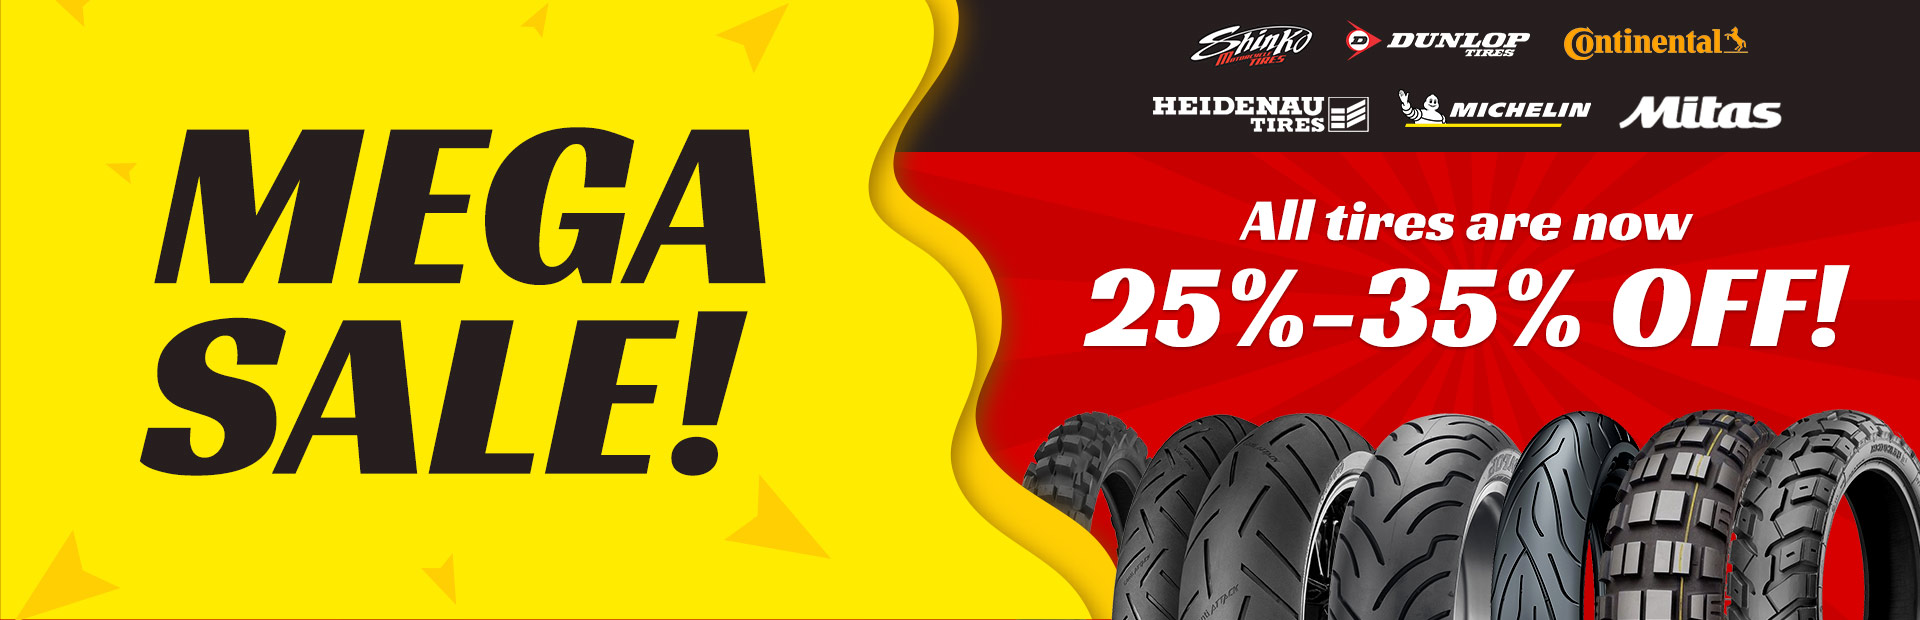 Mega Sale: All tires are now 25%-35% off! Contact us for details.